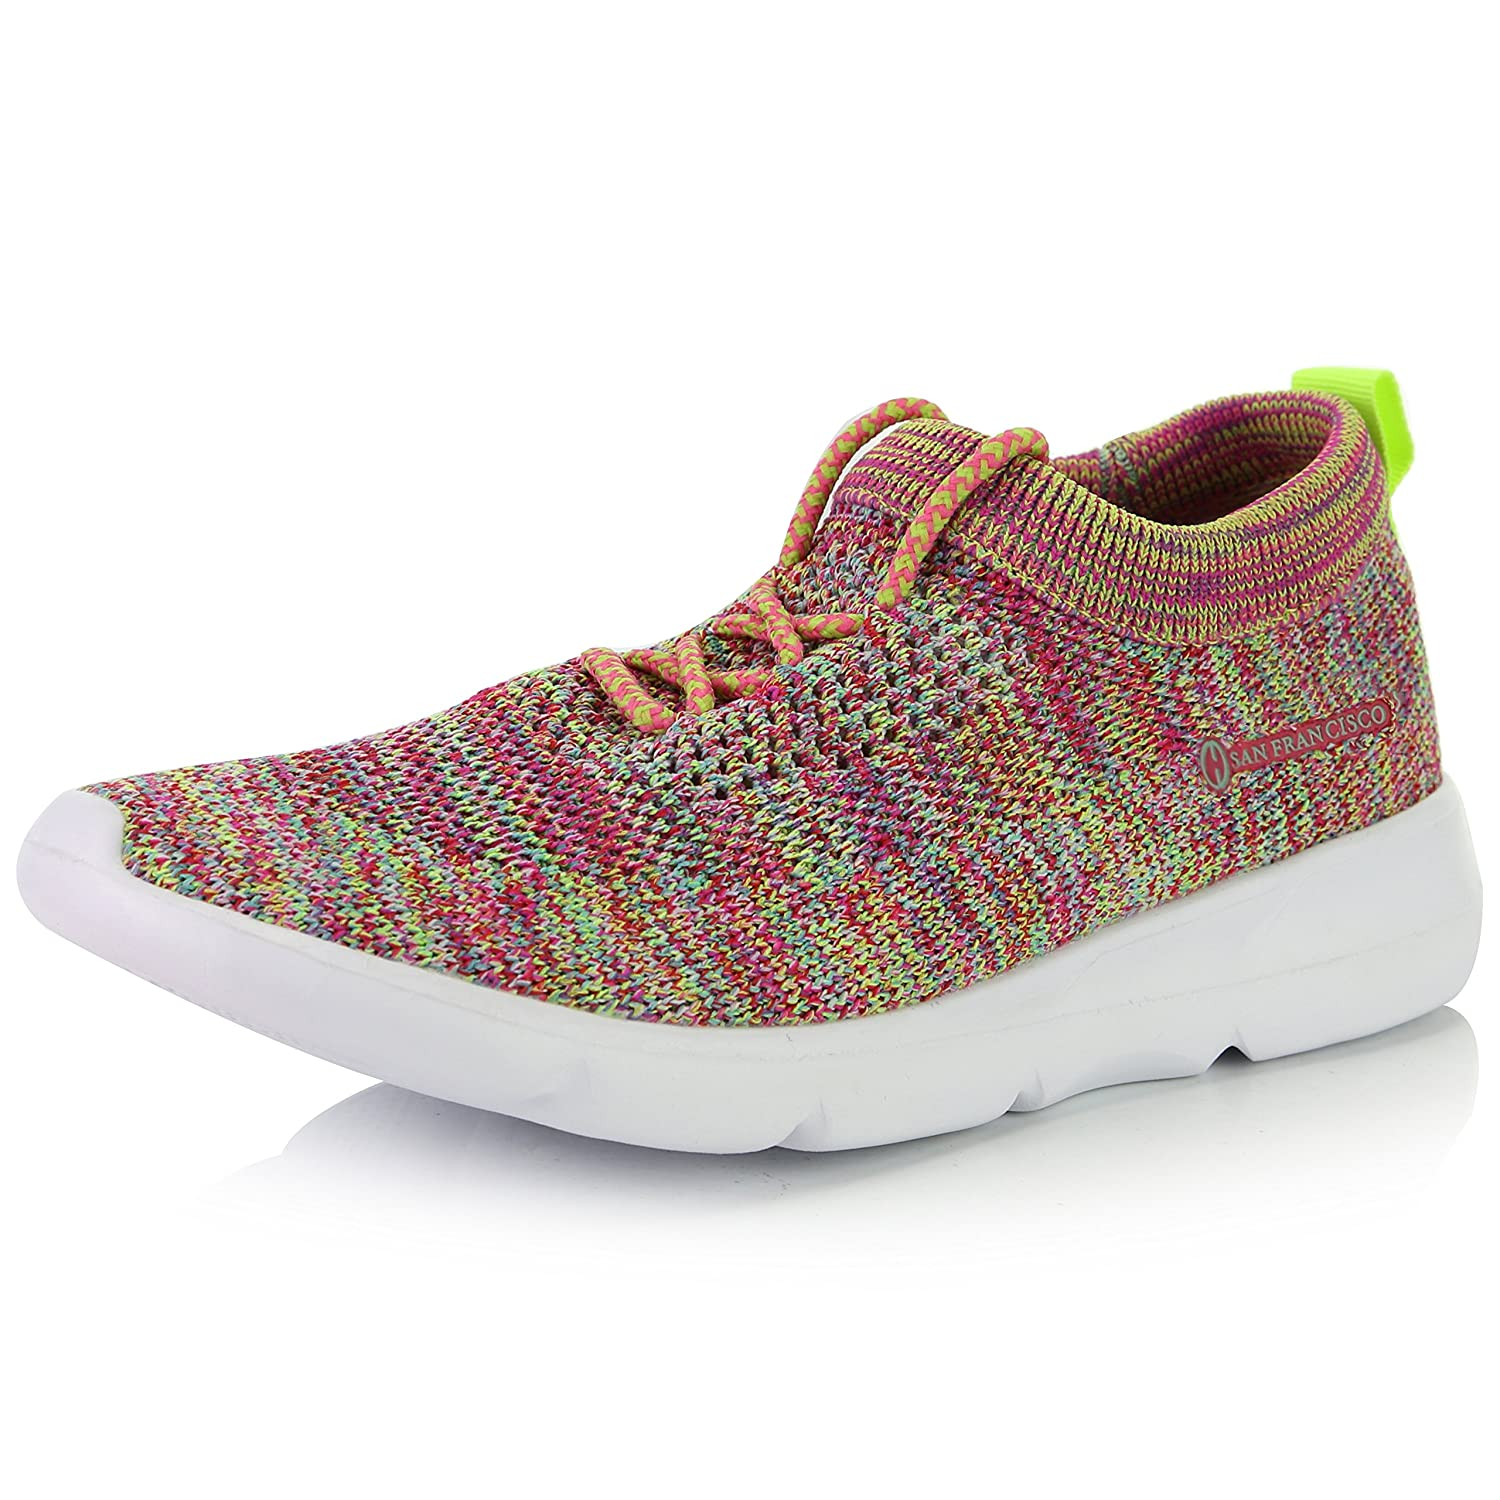 DailyShoes Women's Sneakers Slip-on Walking Memory Foam Shoes B077QM12WH 5 B(M) US|6207l Rainbow Mesh